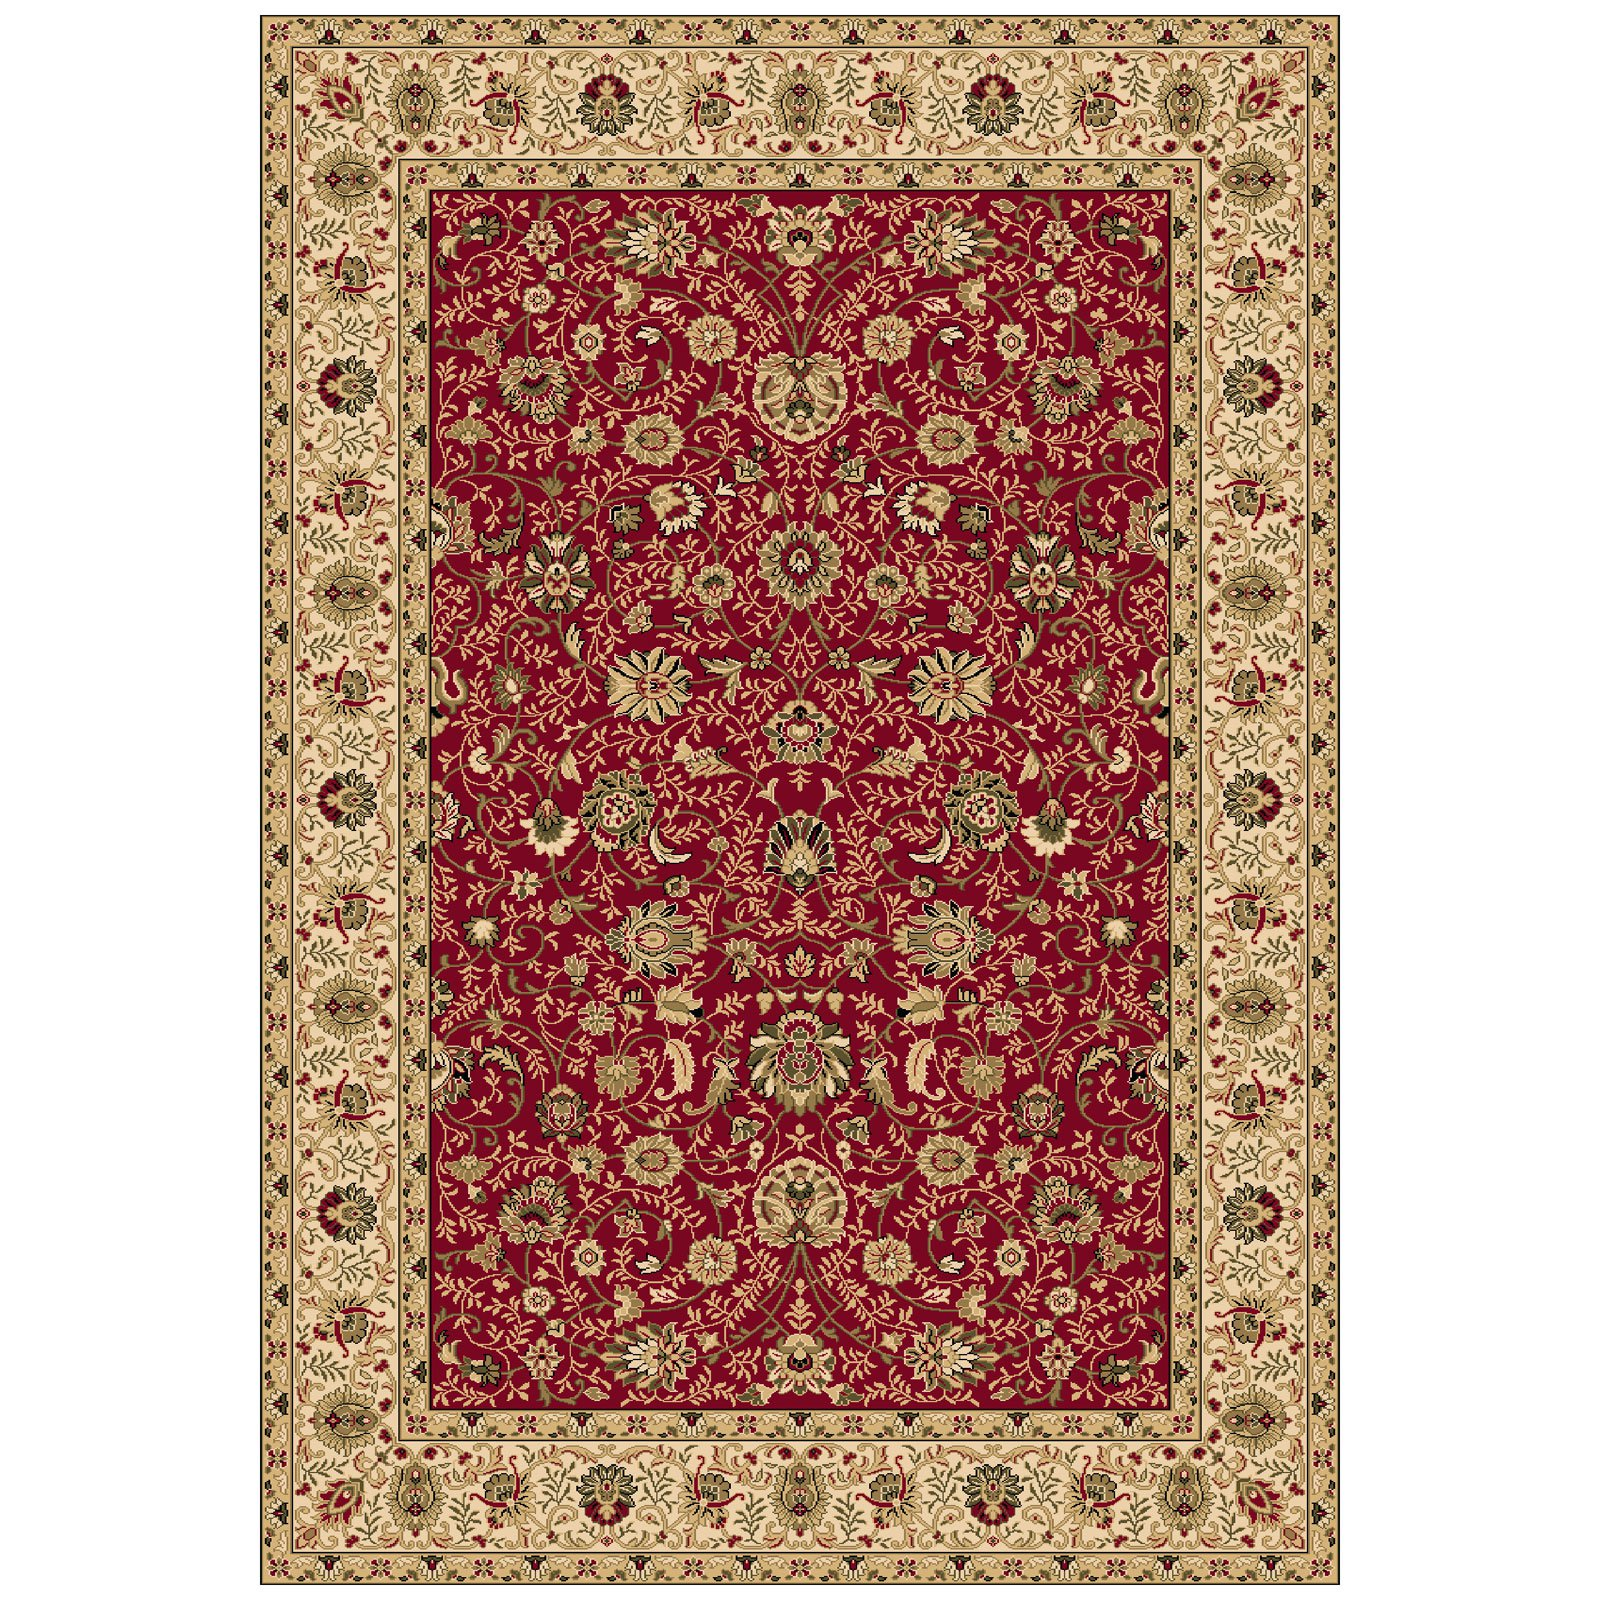 Dynamic Rugs Shiraz 51007 Symman Persian Rug - Red